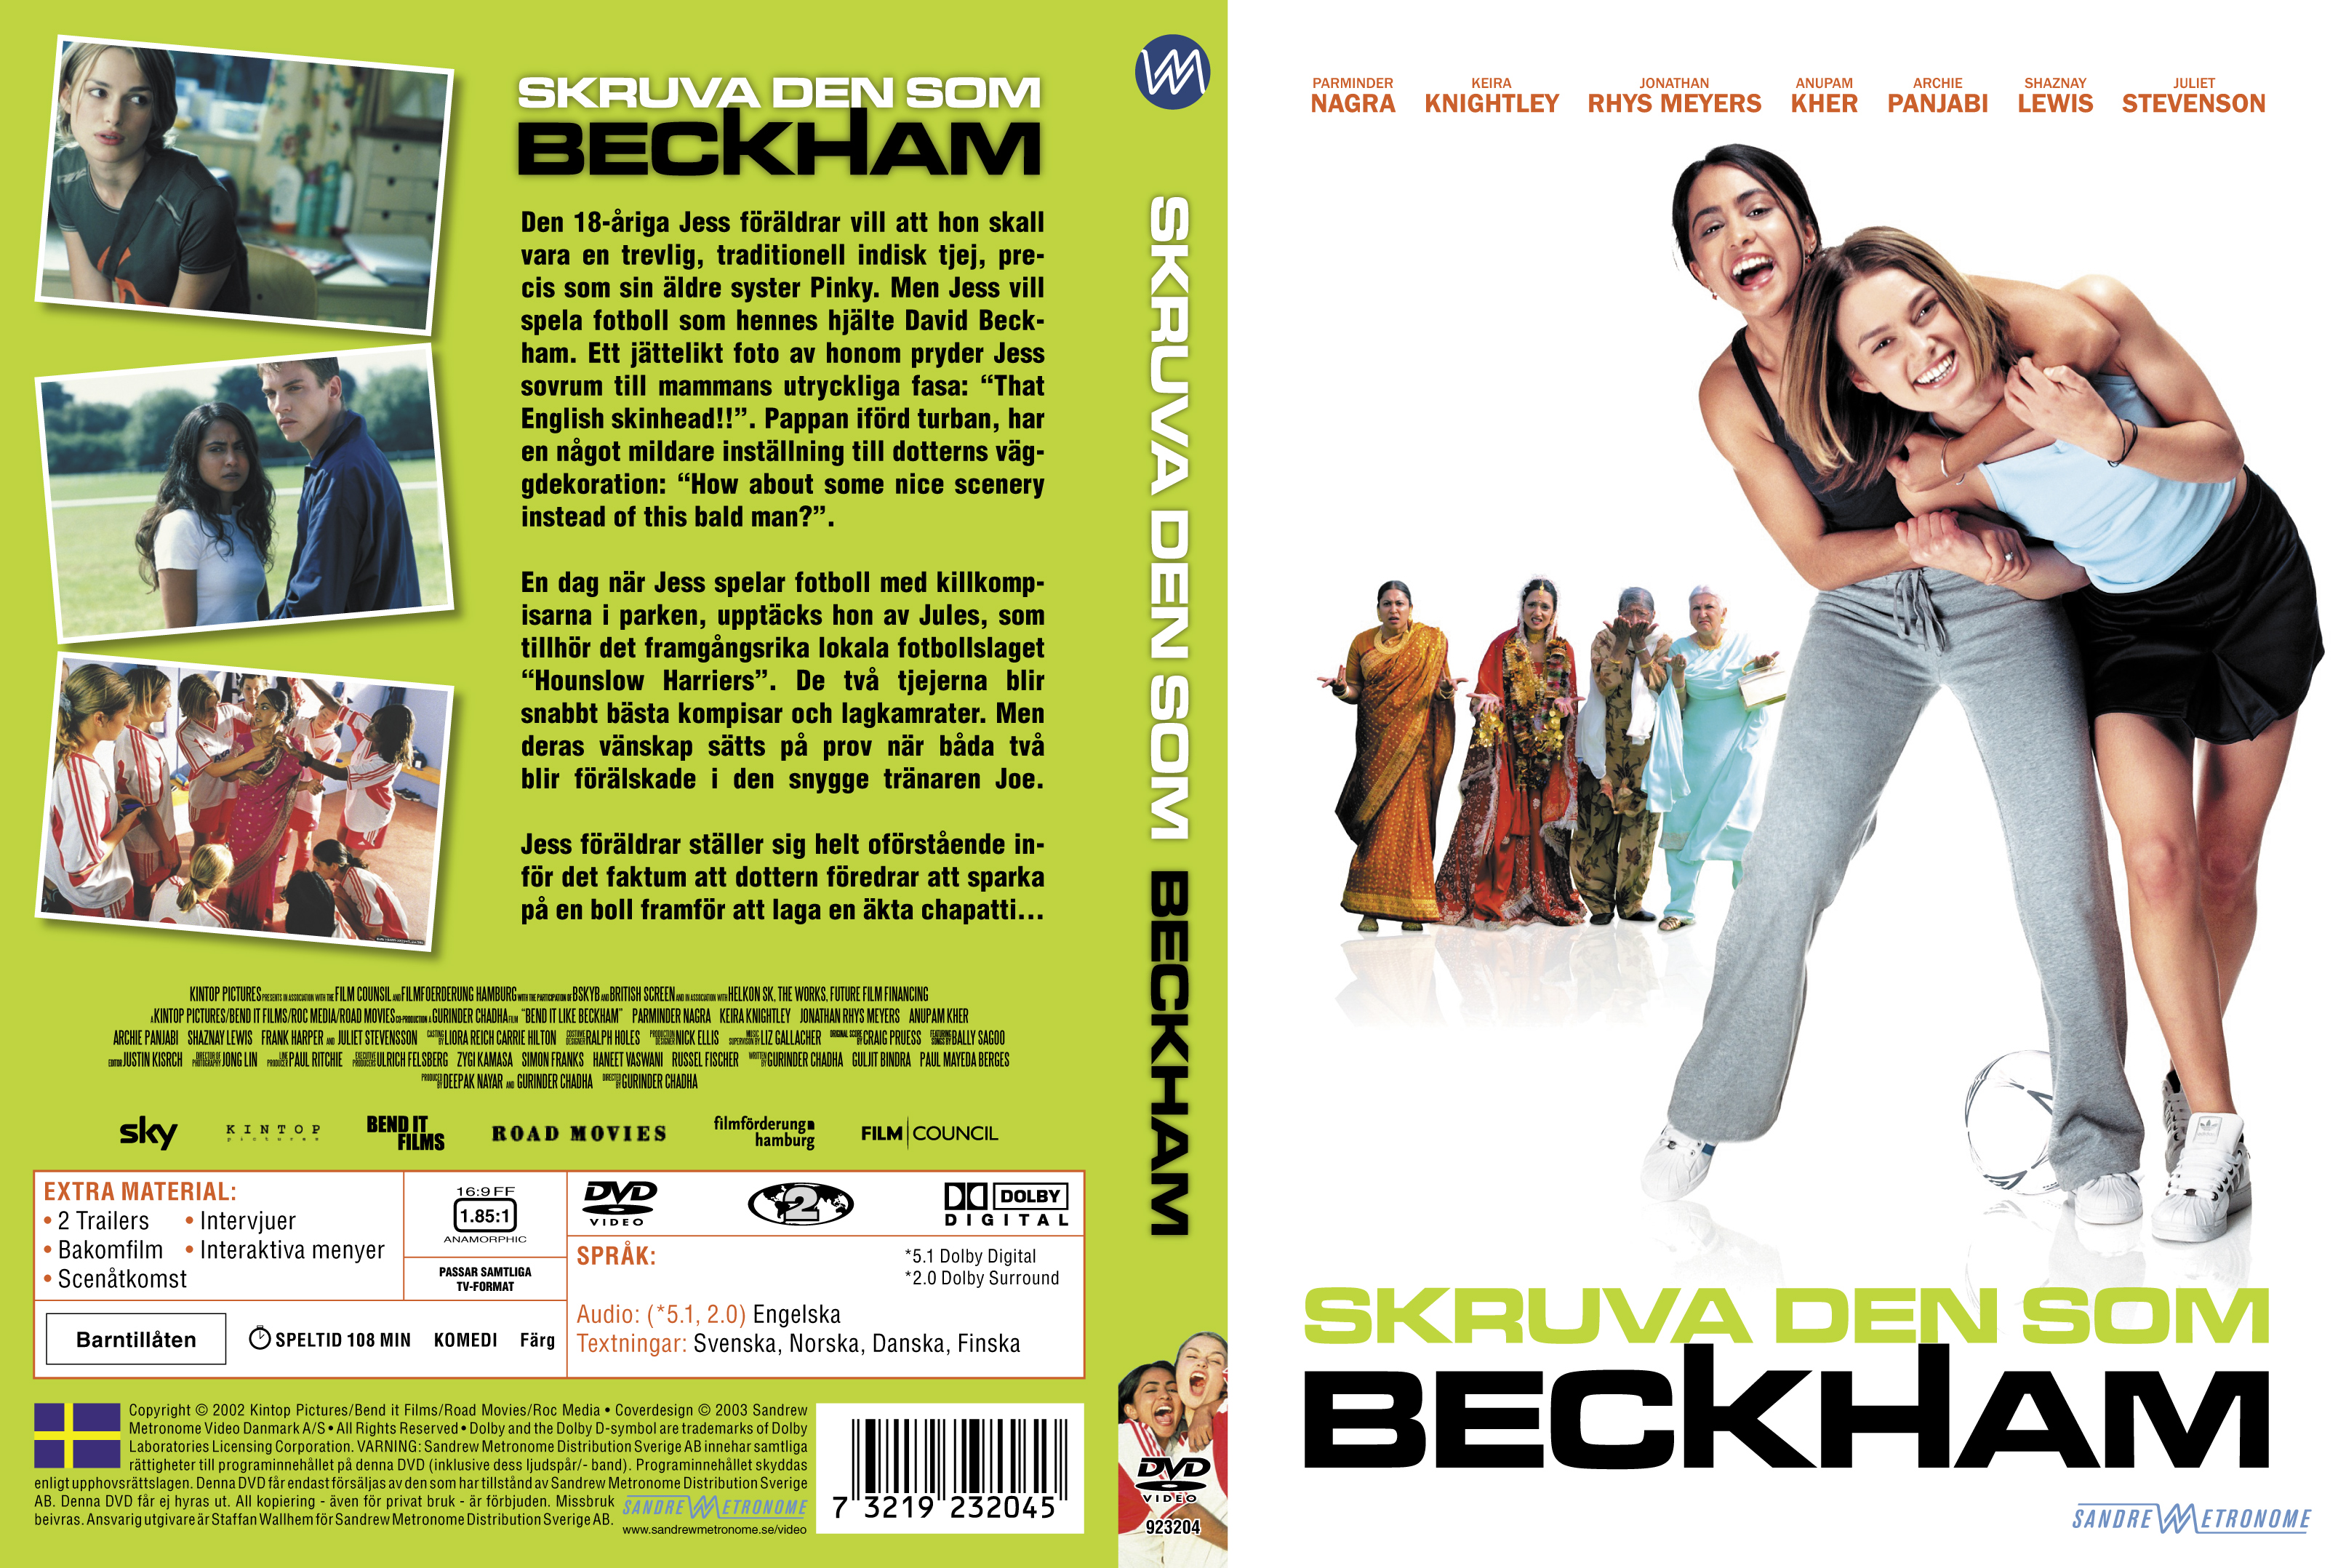 bend it like beckham film Watch bend it like beckham (2002) online for free full movie on gomovies now a comedy about bending the rules to reach your goal, bend it like beckham explores the world of women's football, from kick-abouts in the park to freekicks in the final.